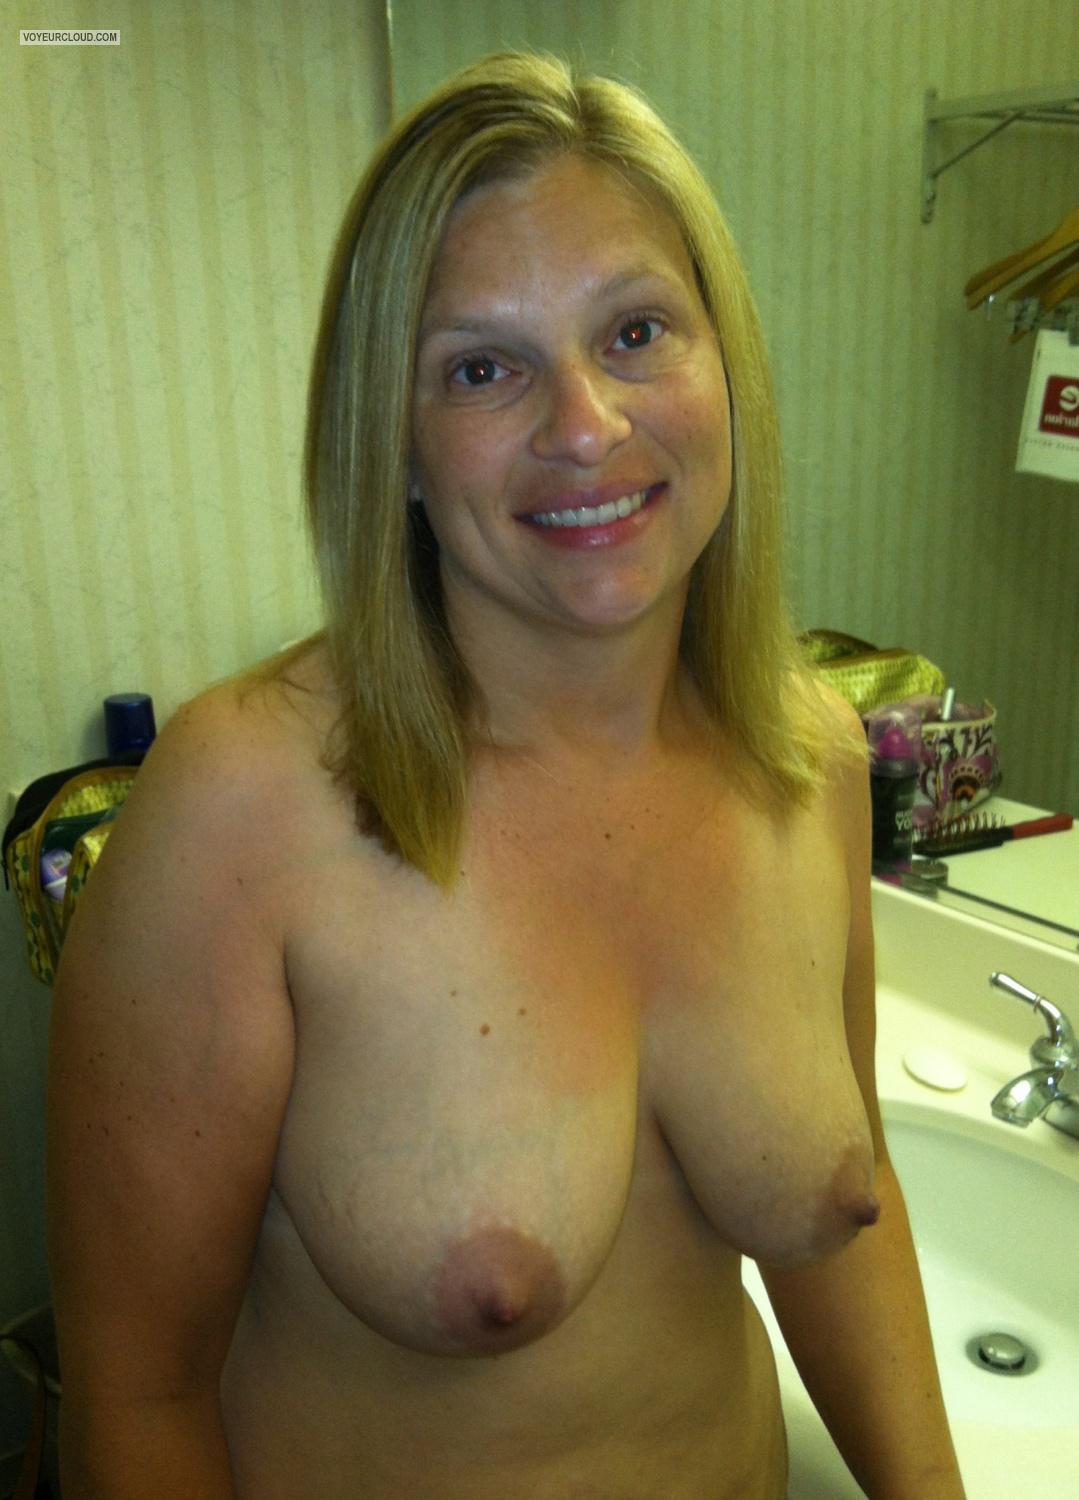 Medium Tits Topless American Girl